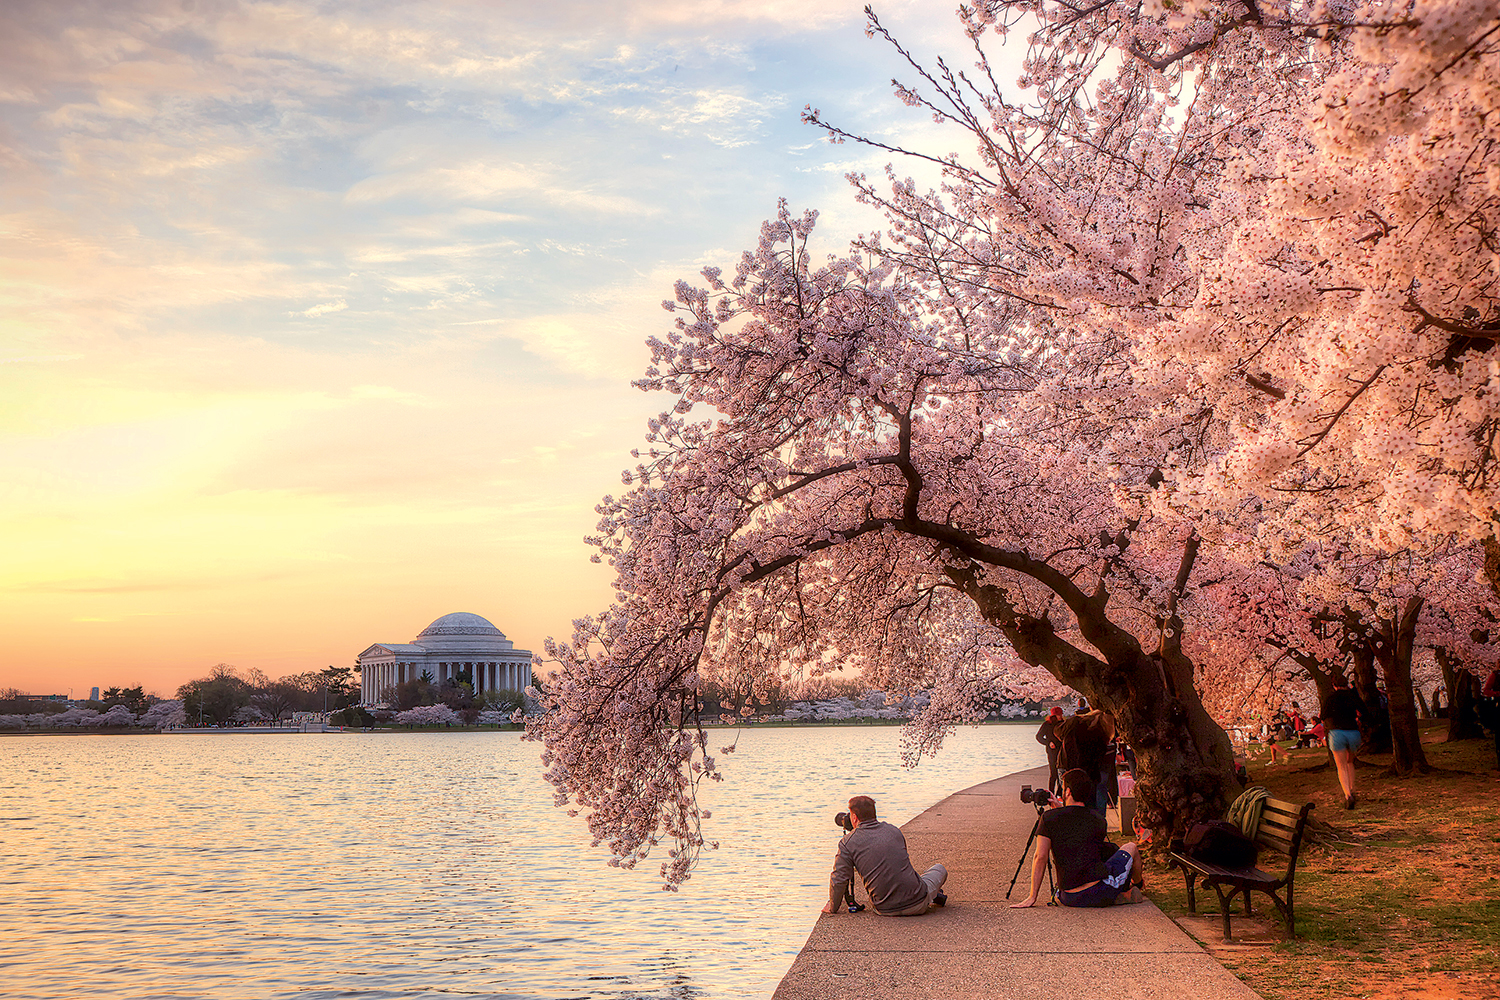 Stats You Didn't Know About DC's Cherry Blossoms